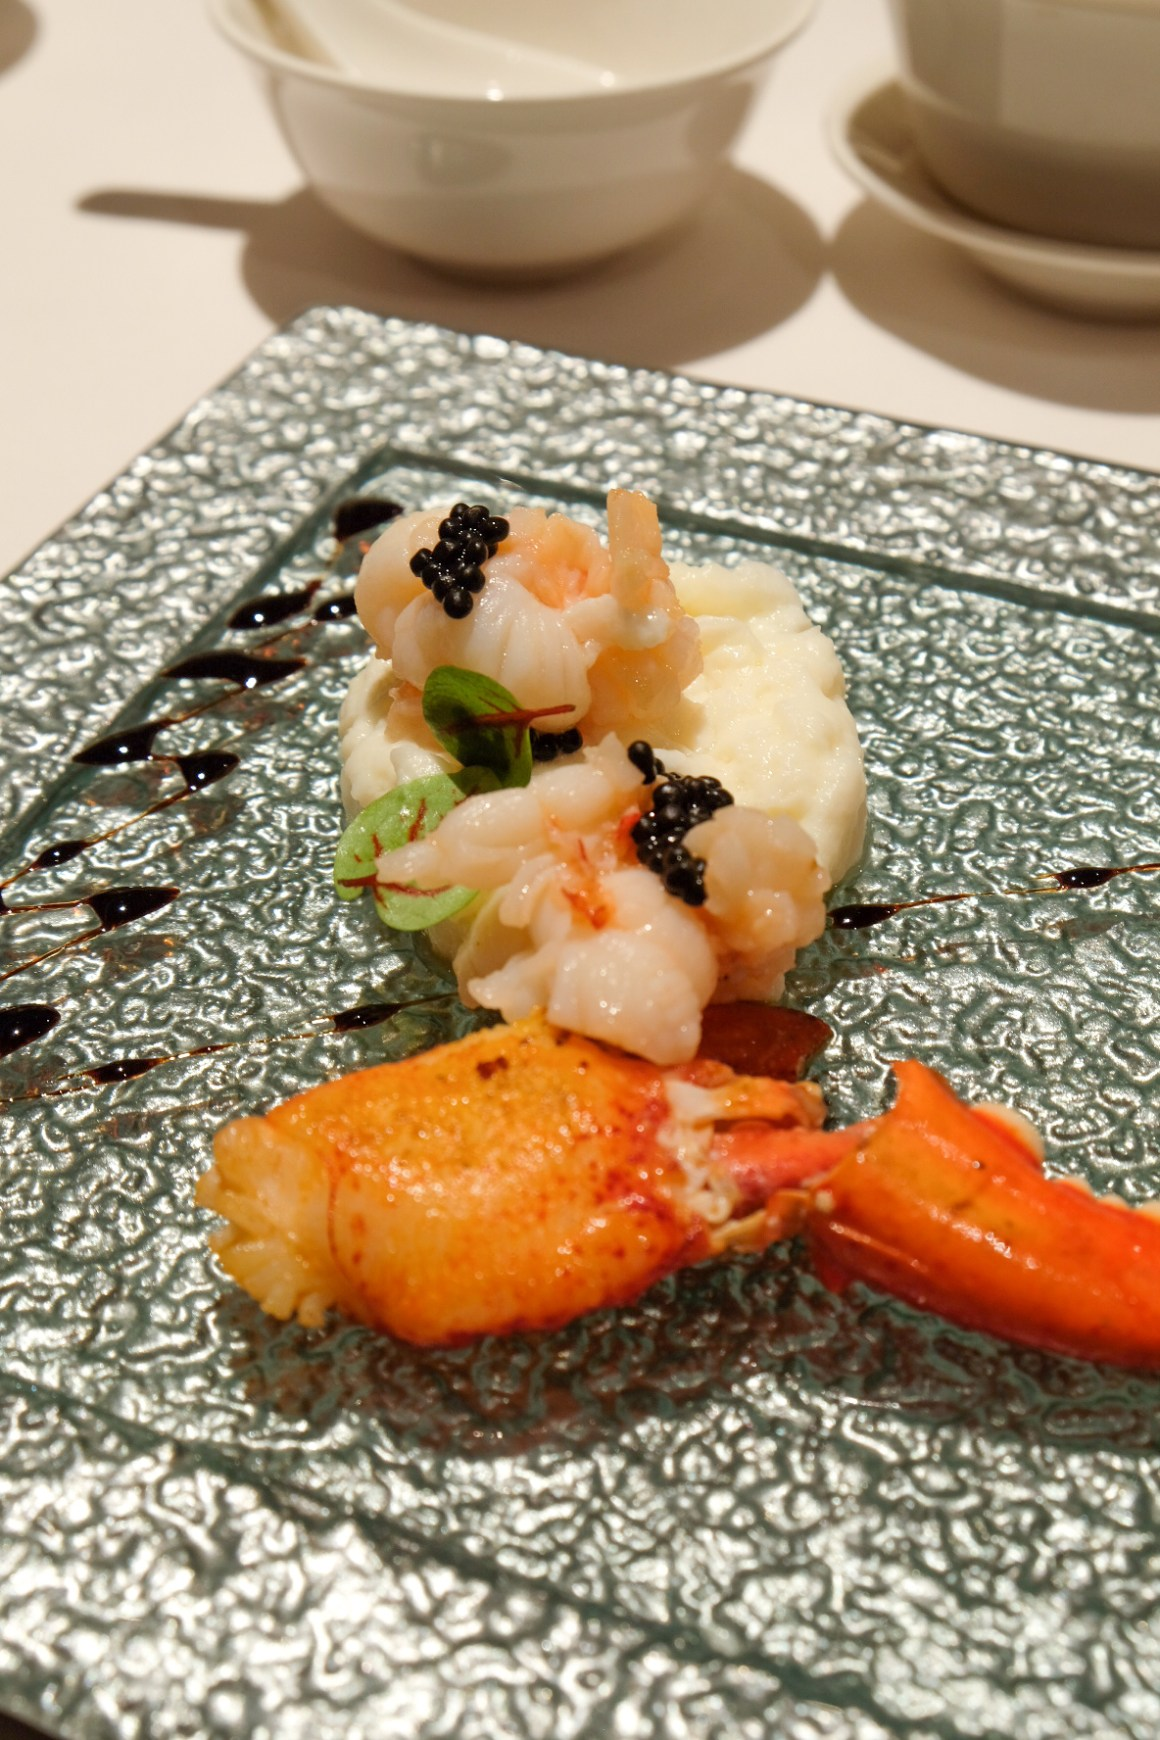 Wok-fried Boston Lobster with Caviar, Egg White, Fresh Milk & Broccoli